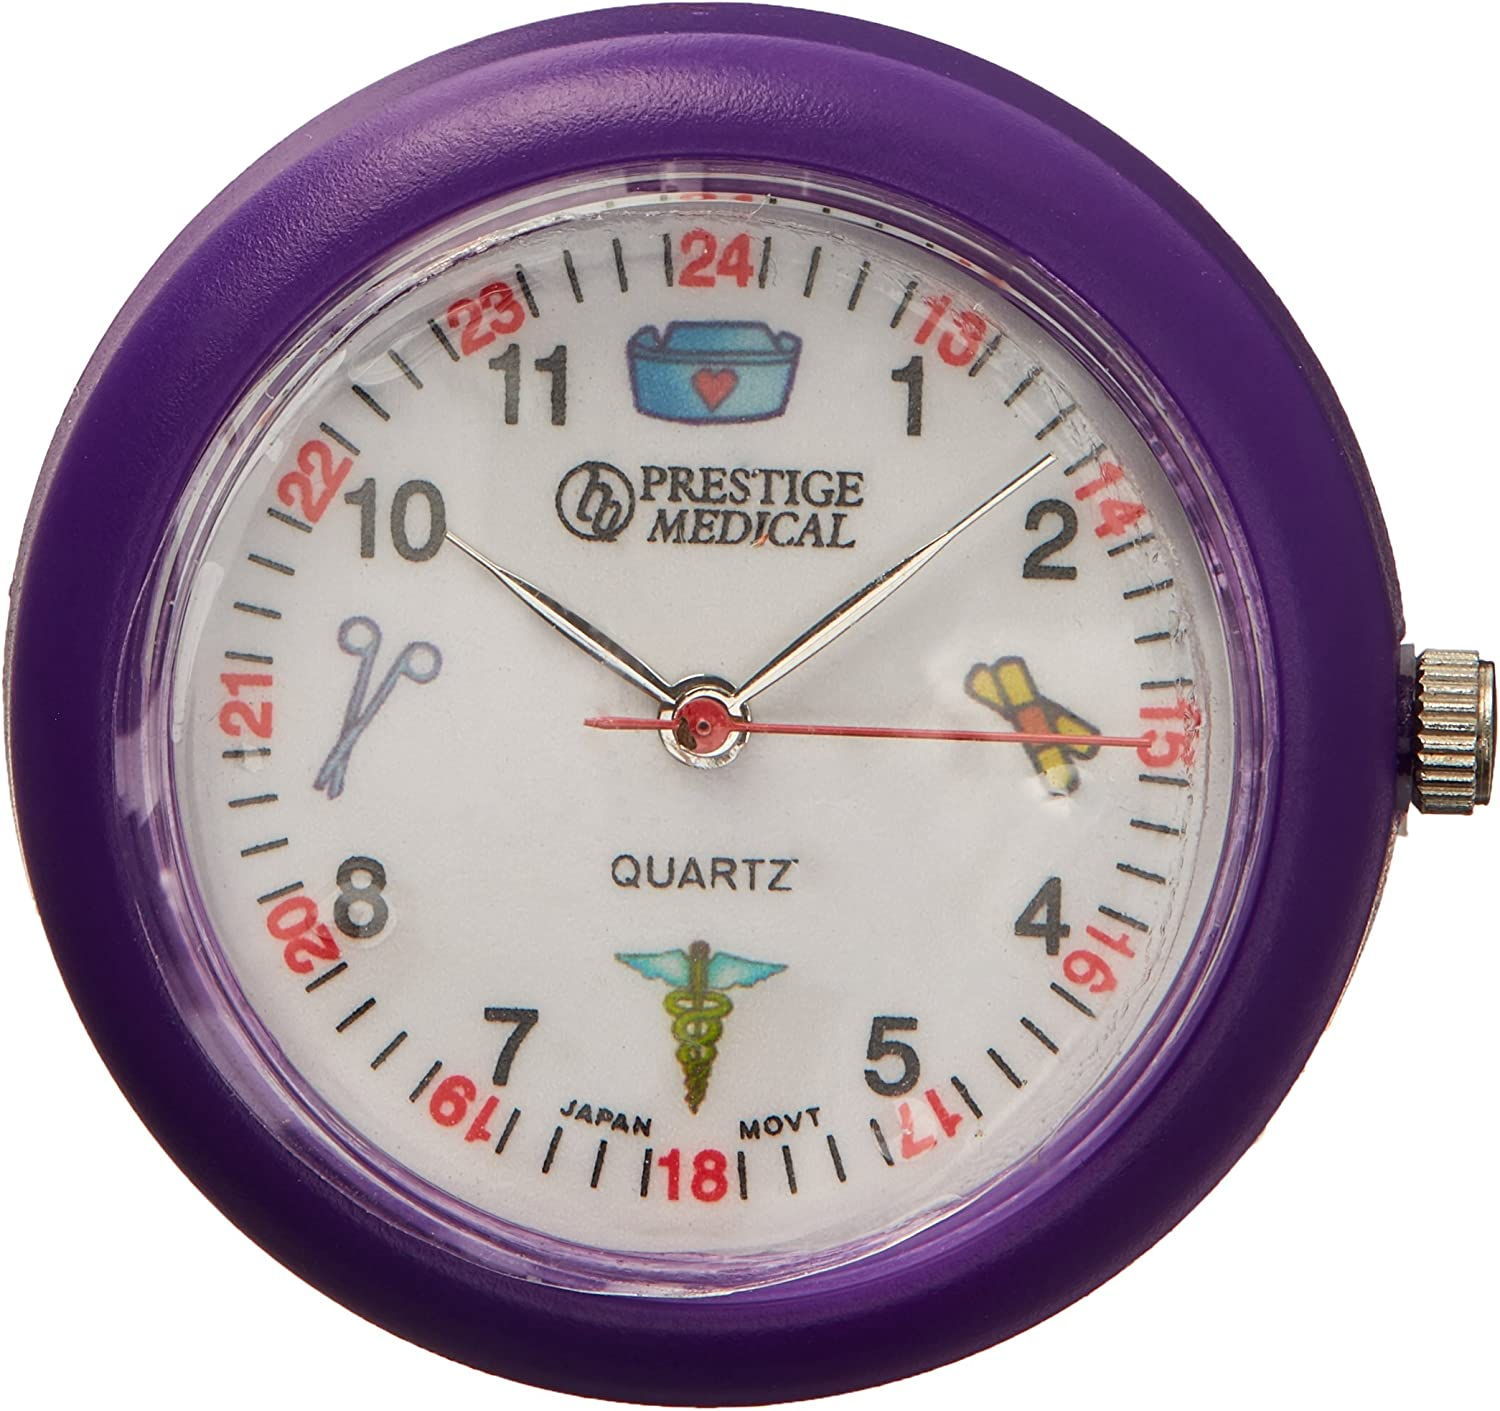 Prestige Medical Symbols Stethoscope Watch, Purple